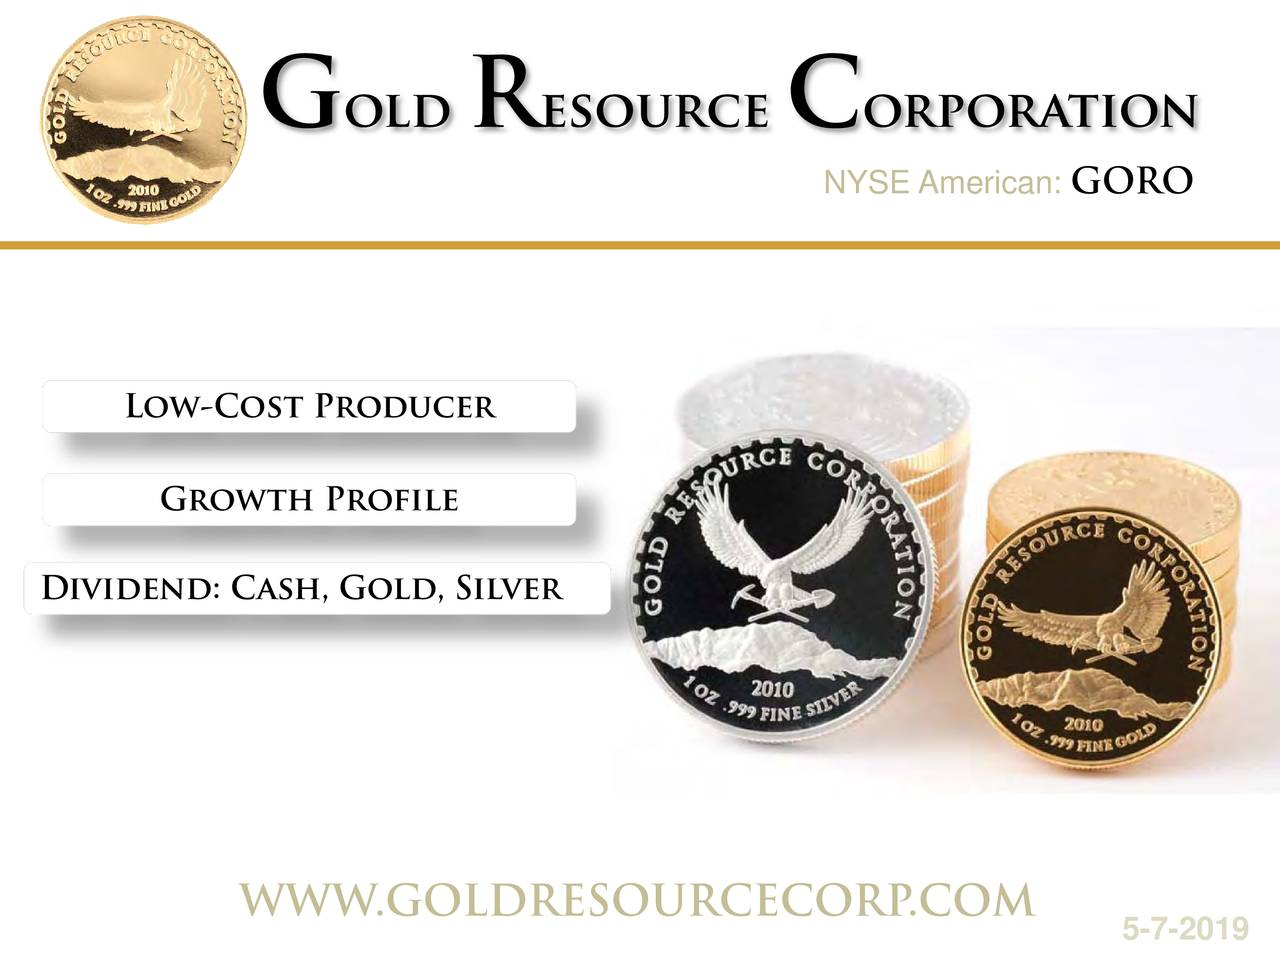 NYSE AmGOROan: Low-Cost Producer Growth Profile Dividend: Cash, Gold, Silver WWW.GOLDRESOURCECOR.COM